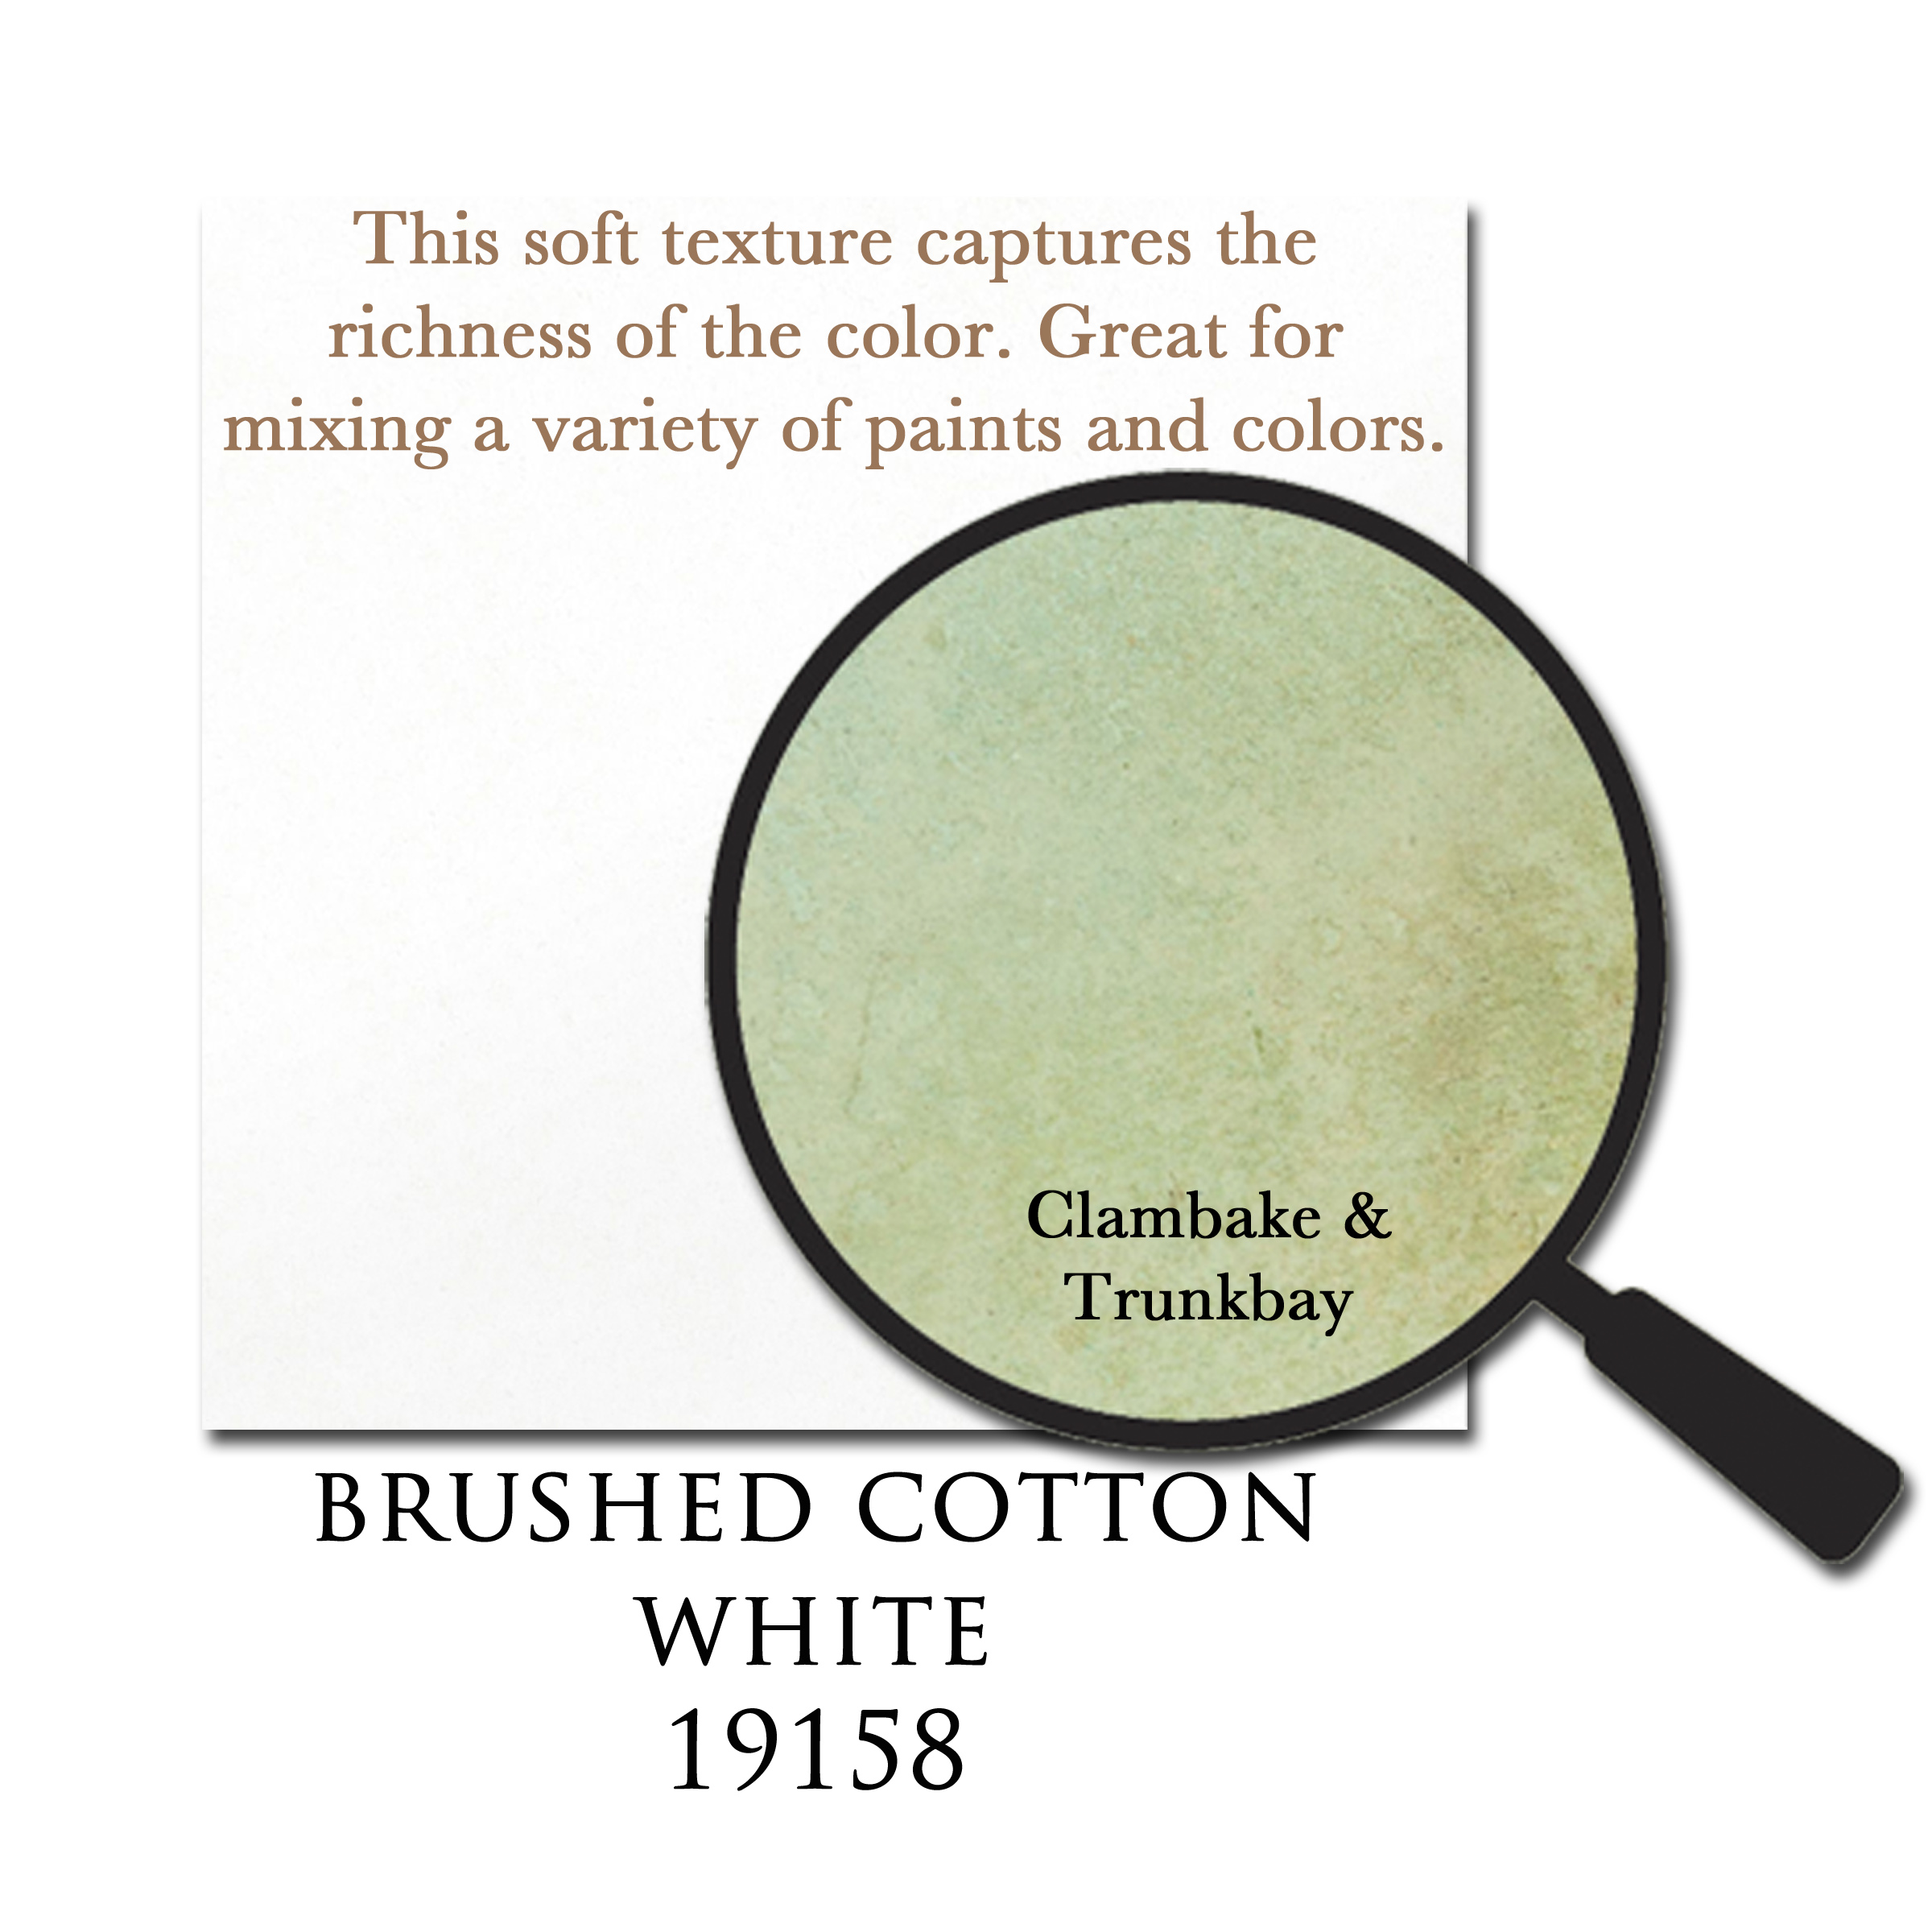 19158-brushed-cotton-white_0